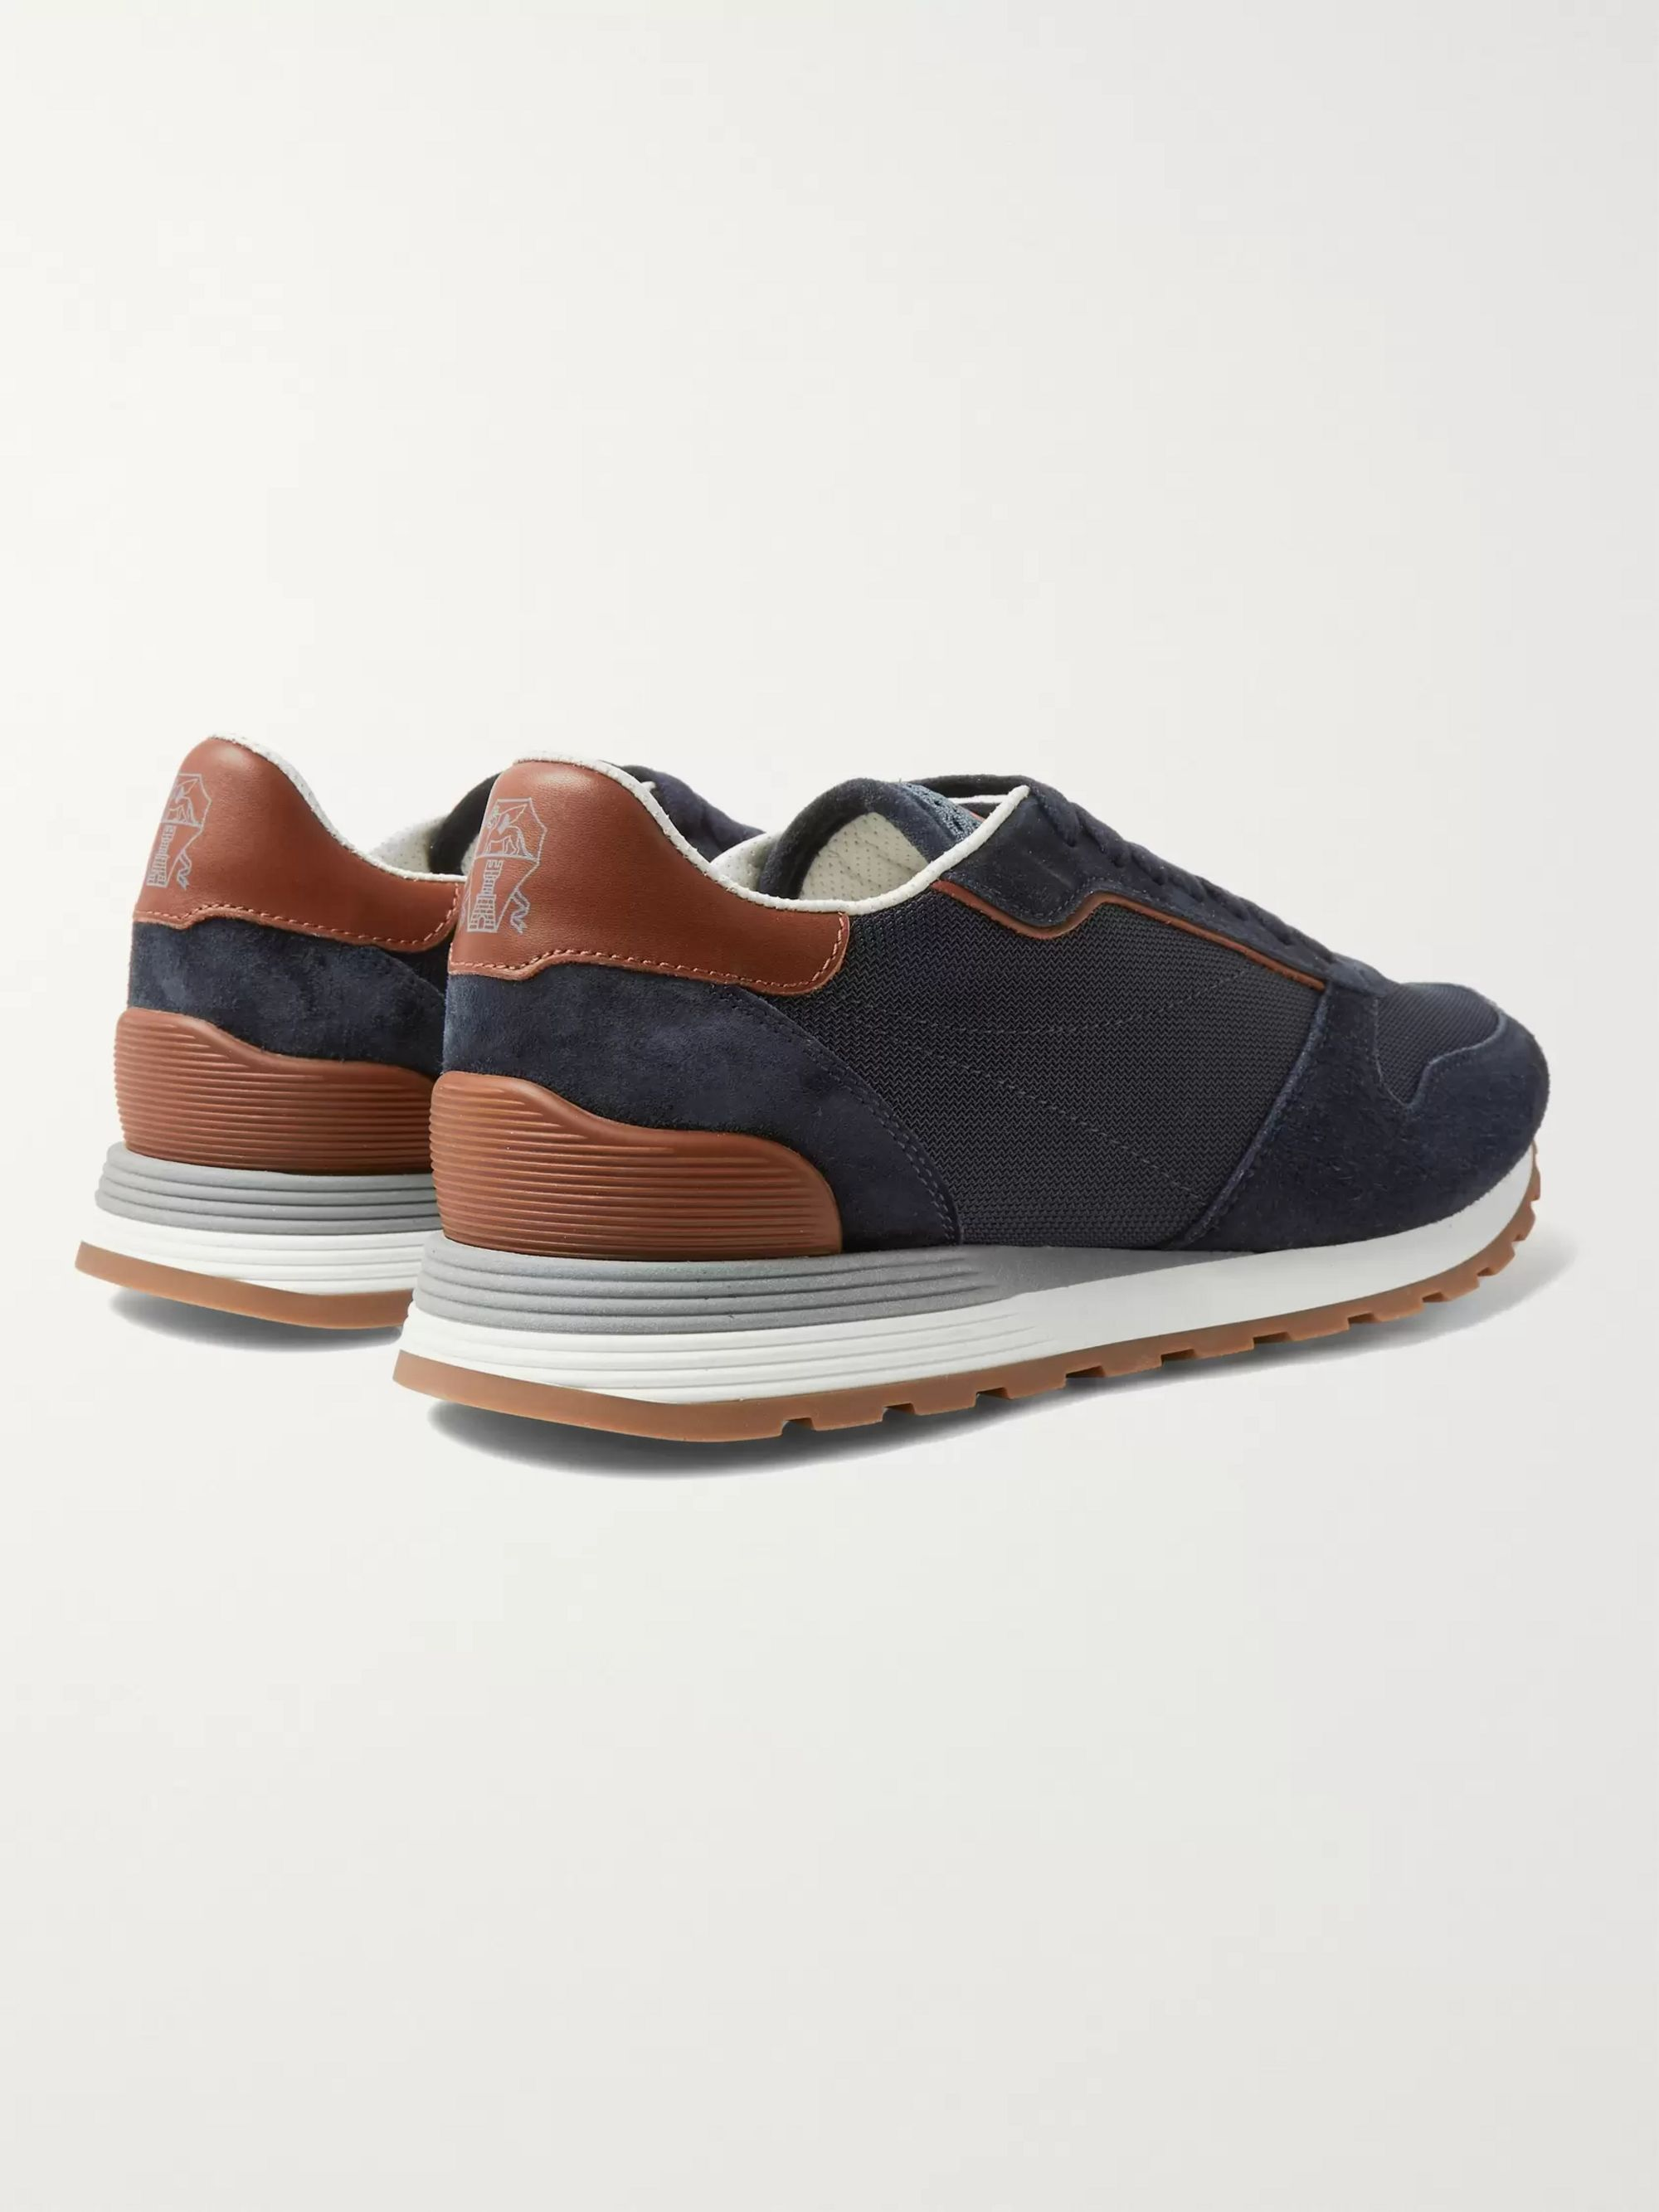 Brunello Cucinelli Leather-Trimmed Suede and Mesh Sneakers